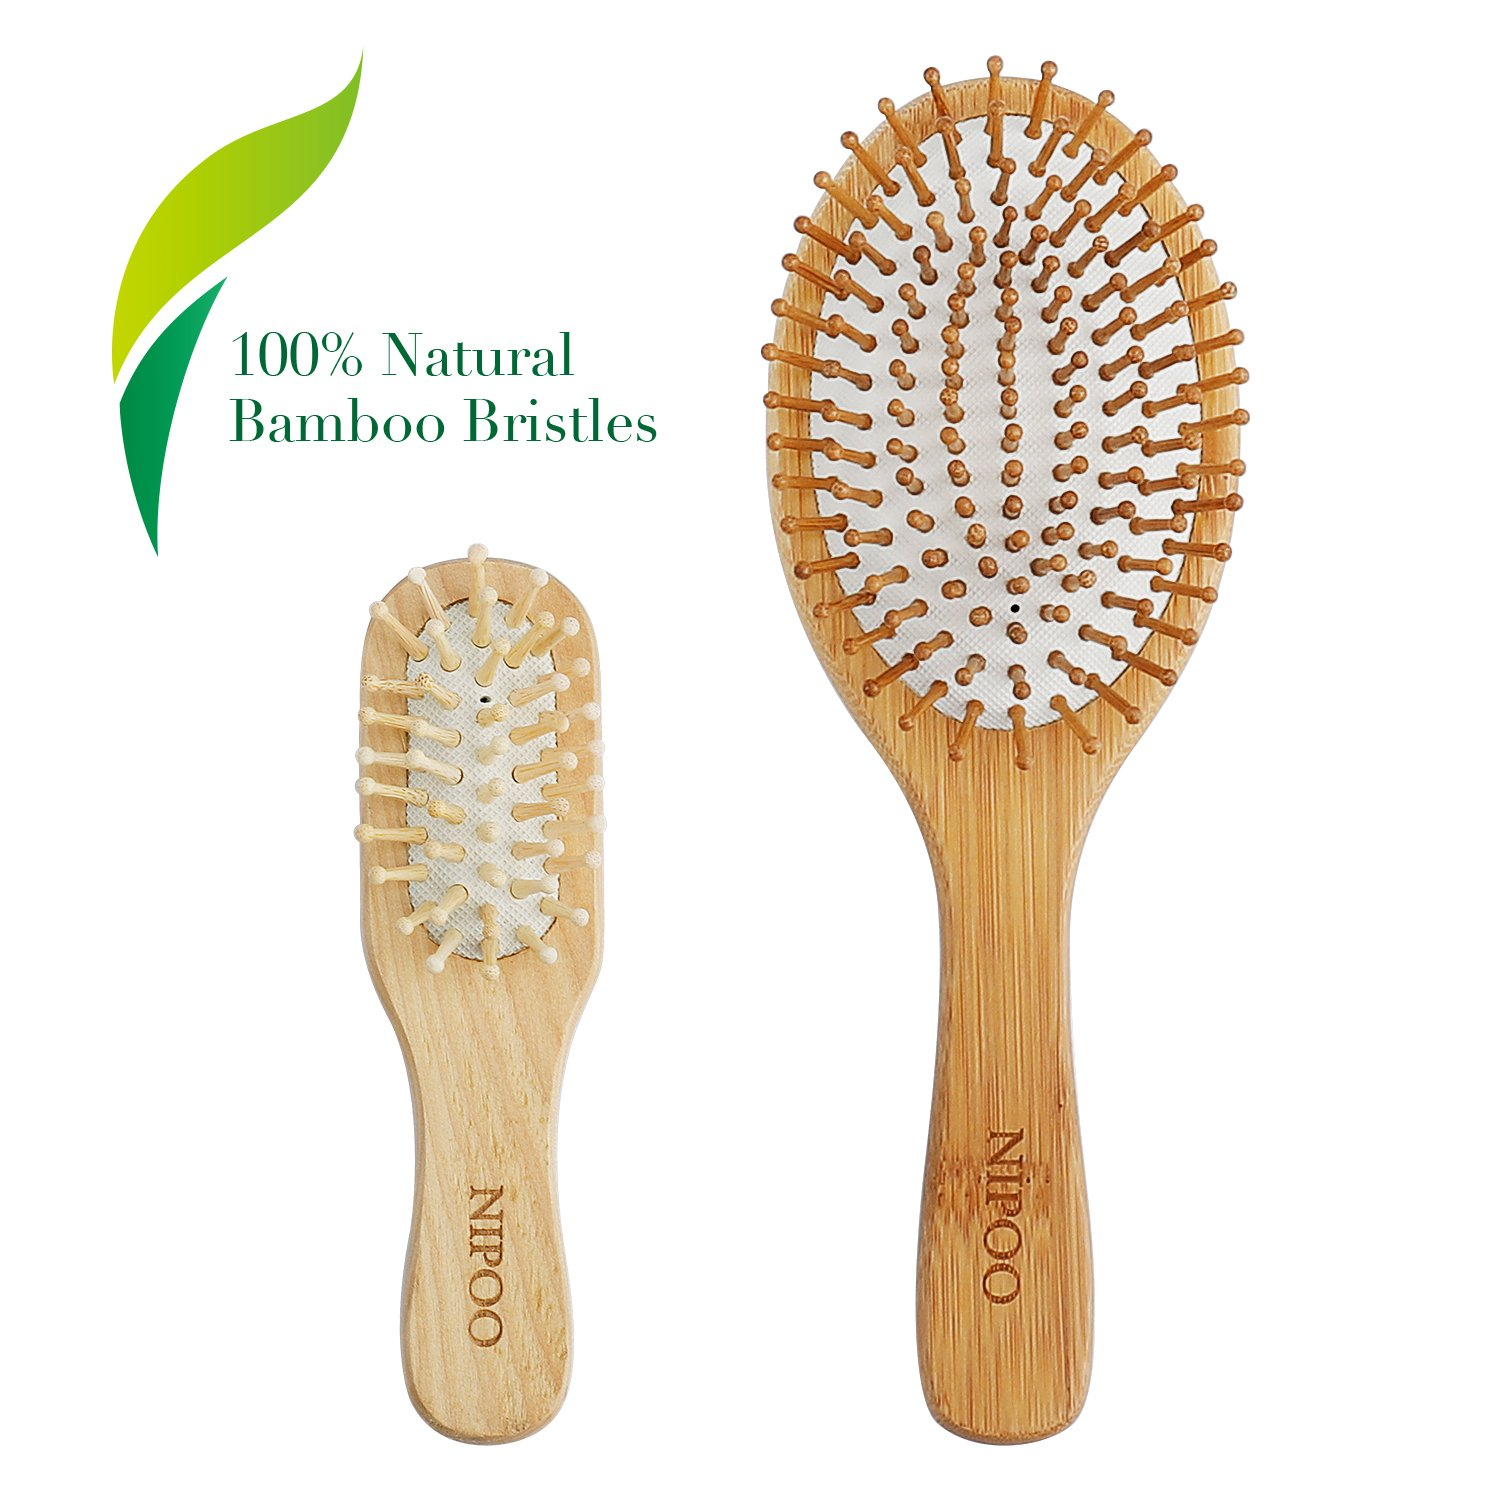 NIPOO Natural Wooden Paddle Hair Brush + Free Mini Travel Brush - Eco-Friendly Bamboo Bristle Detangling Hairbrush for Women Men and Kids - Reduce Frizz and Massage Scalp (9 inch)